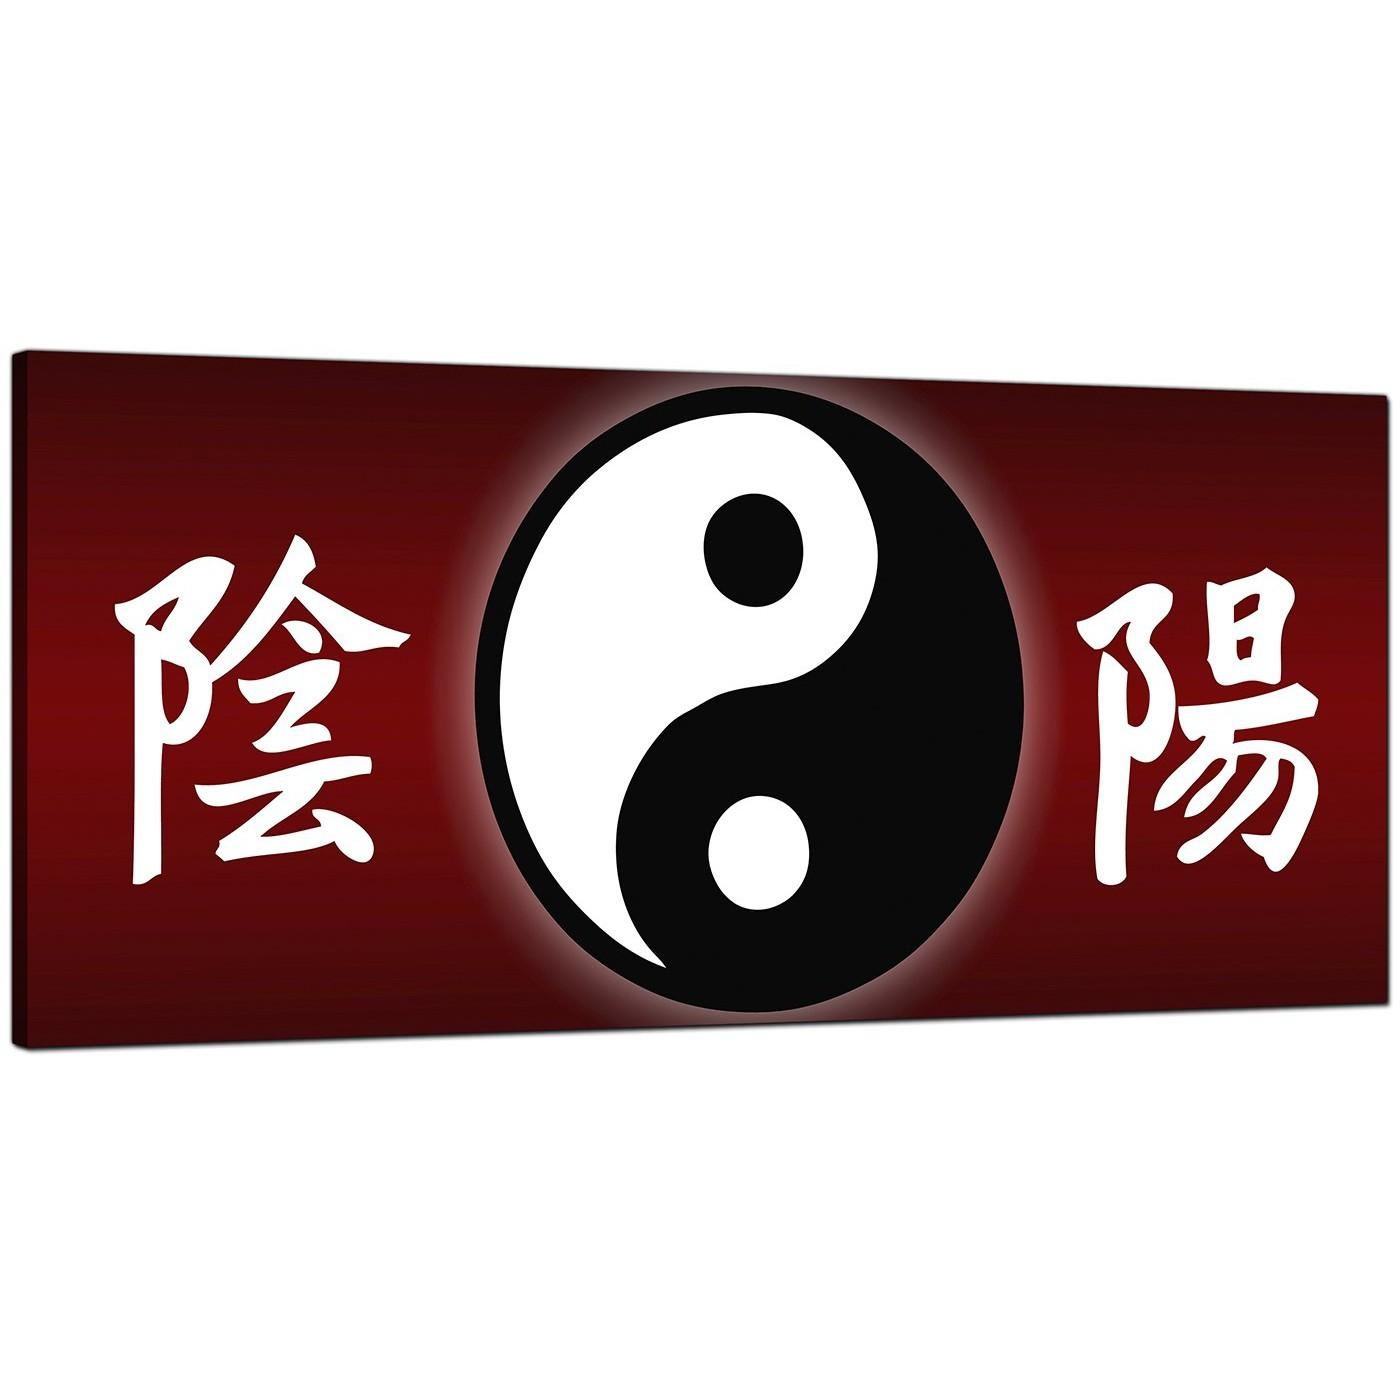 Cheap Red Canvas Wall Art Of Chinese Writing And Yin Yang Symbol Intended For Chinese Symbol Wall Art (Image 5 of 20)